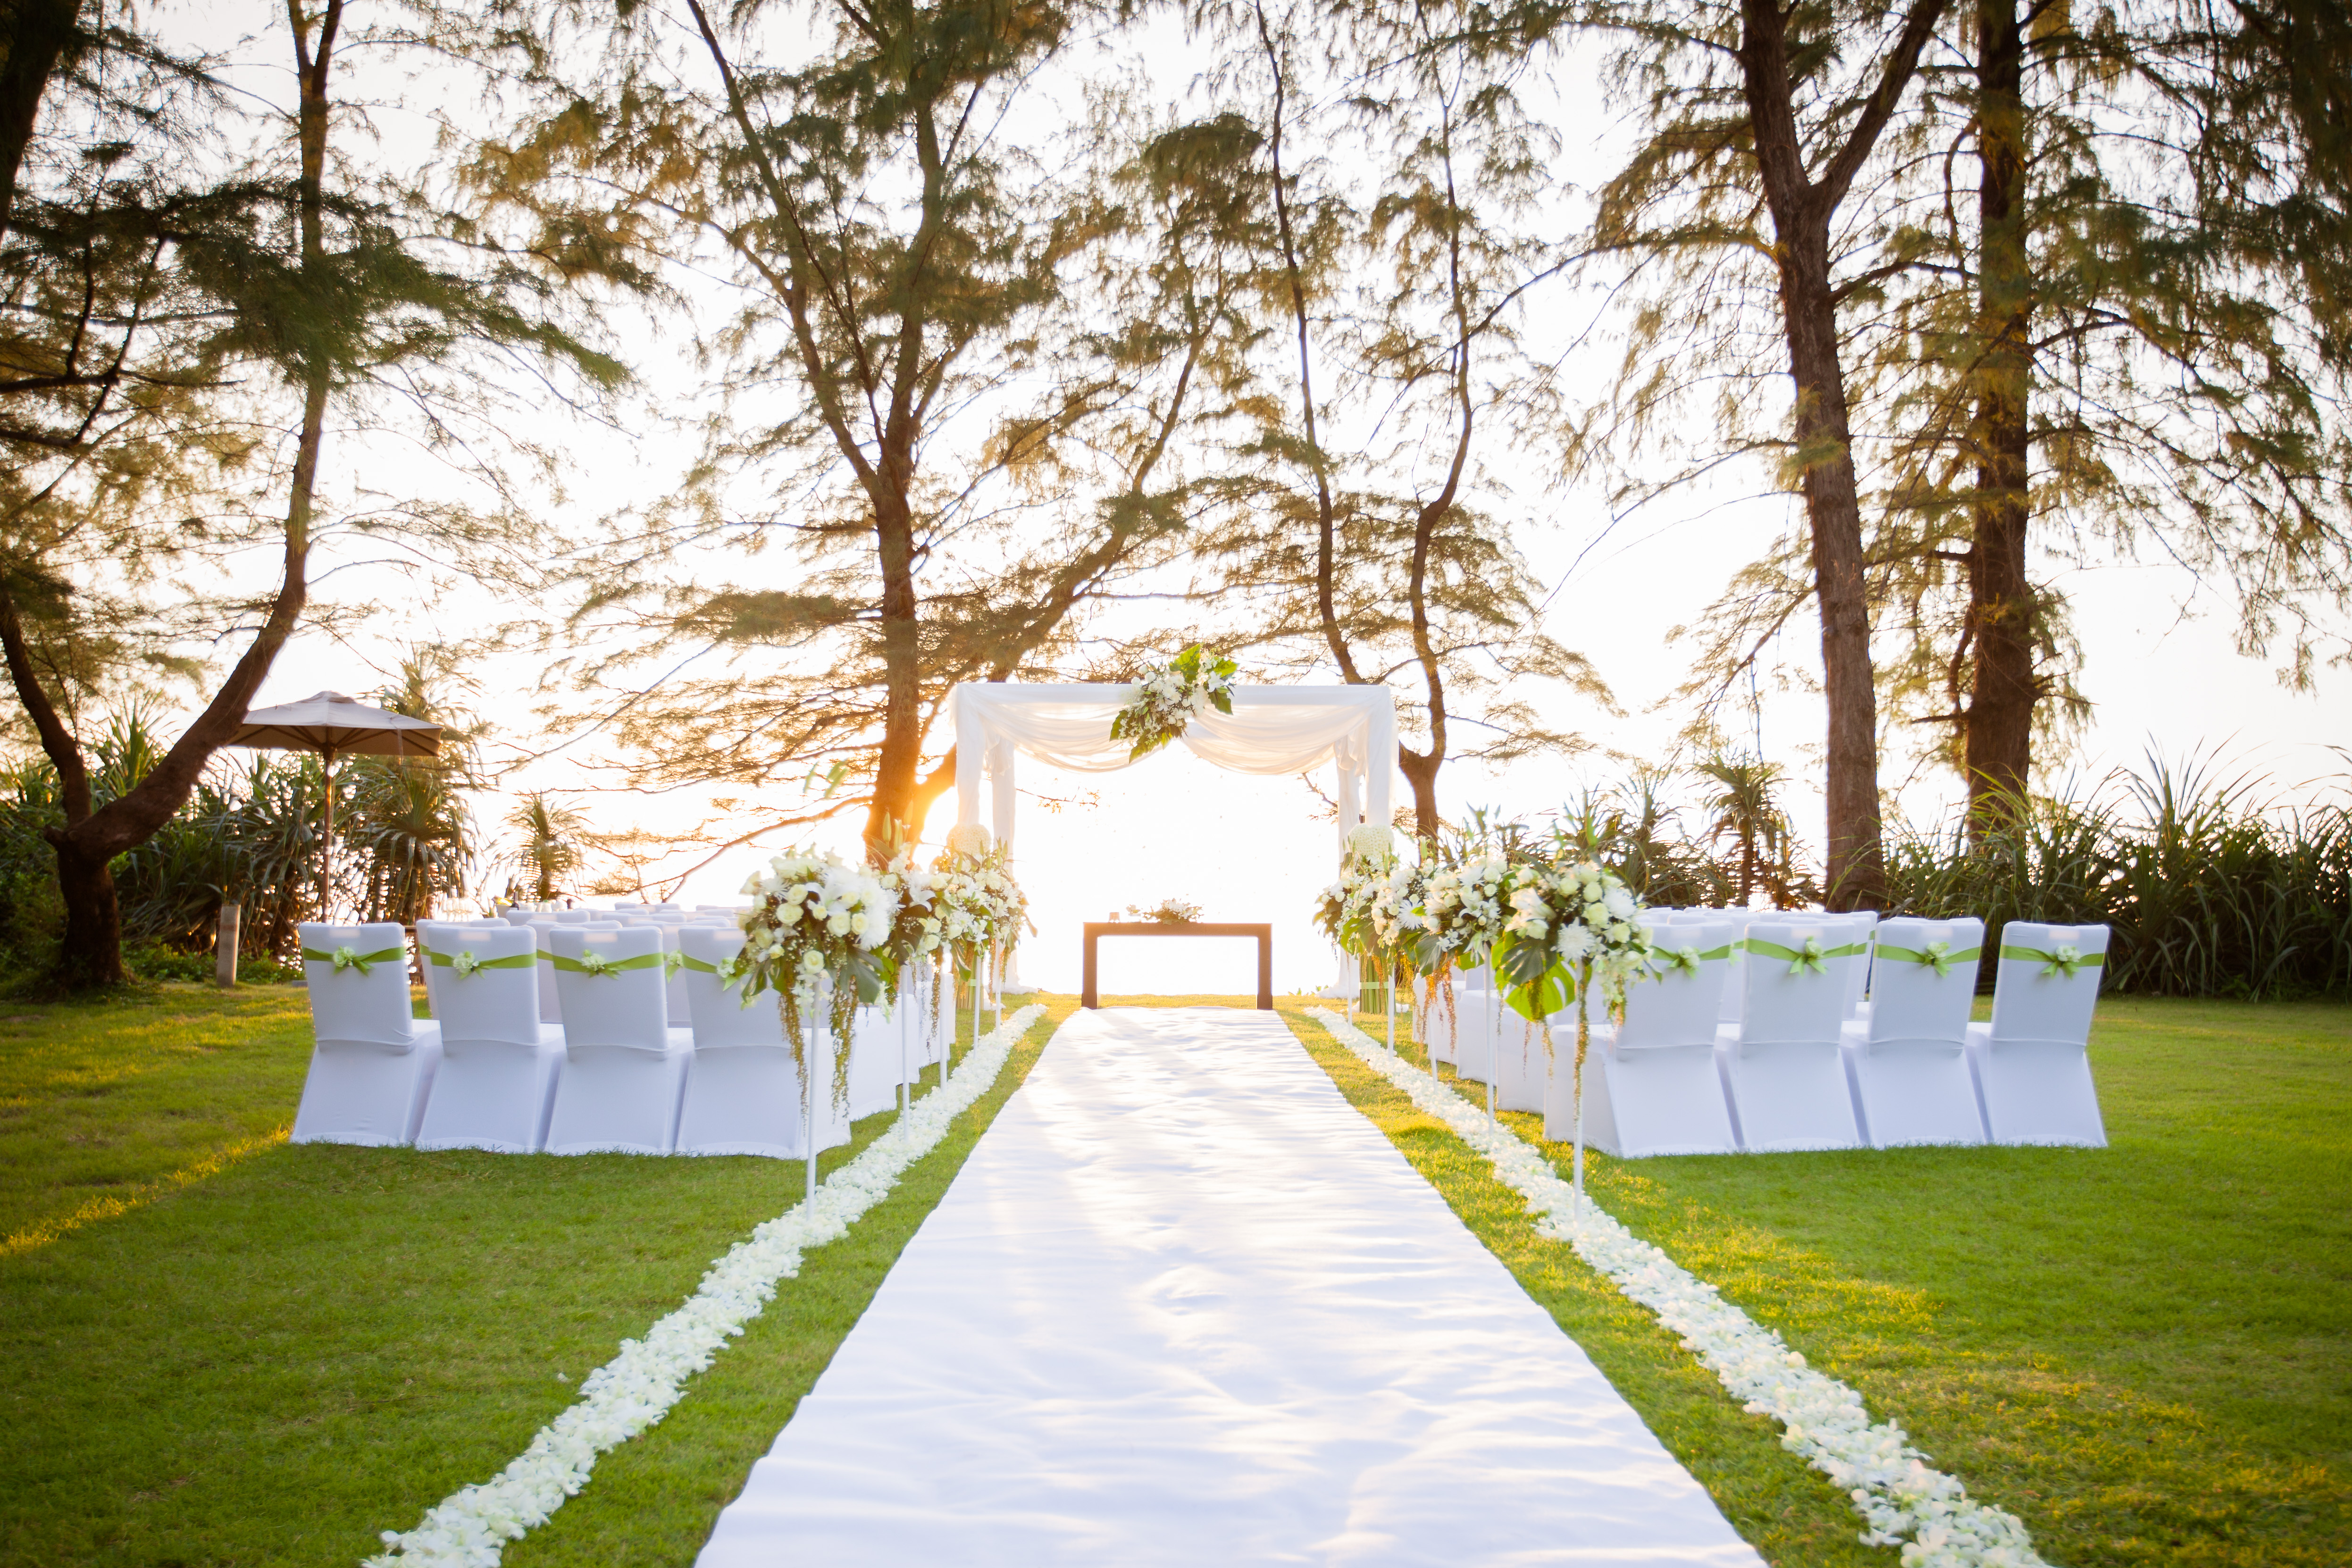 Lawn - Wedding Set-up